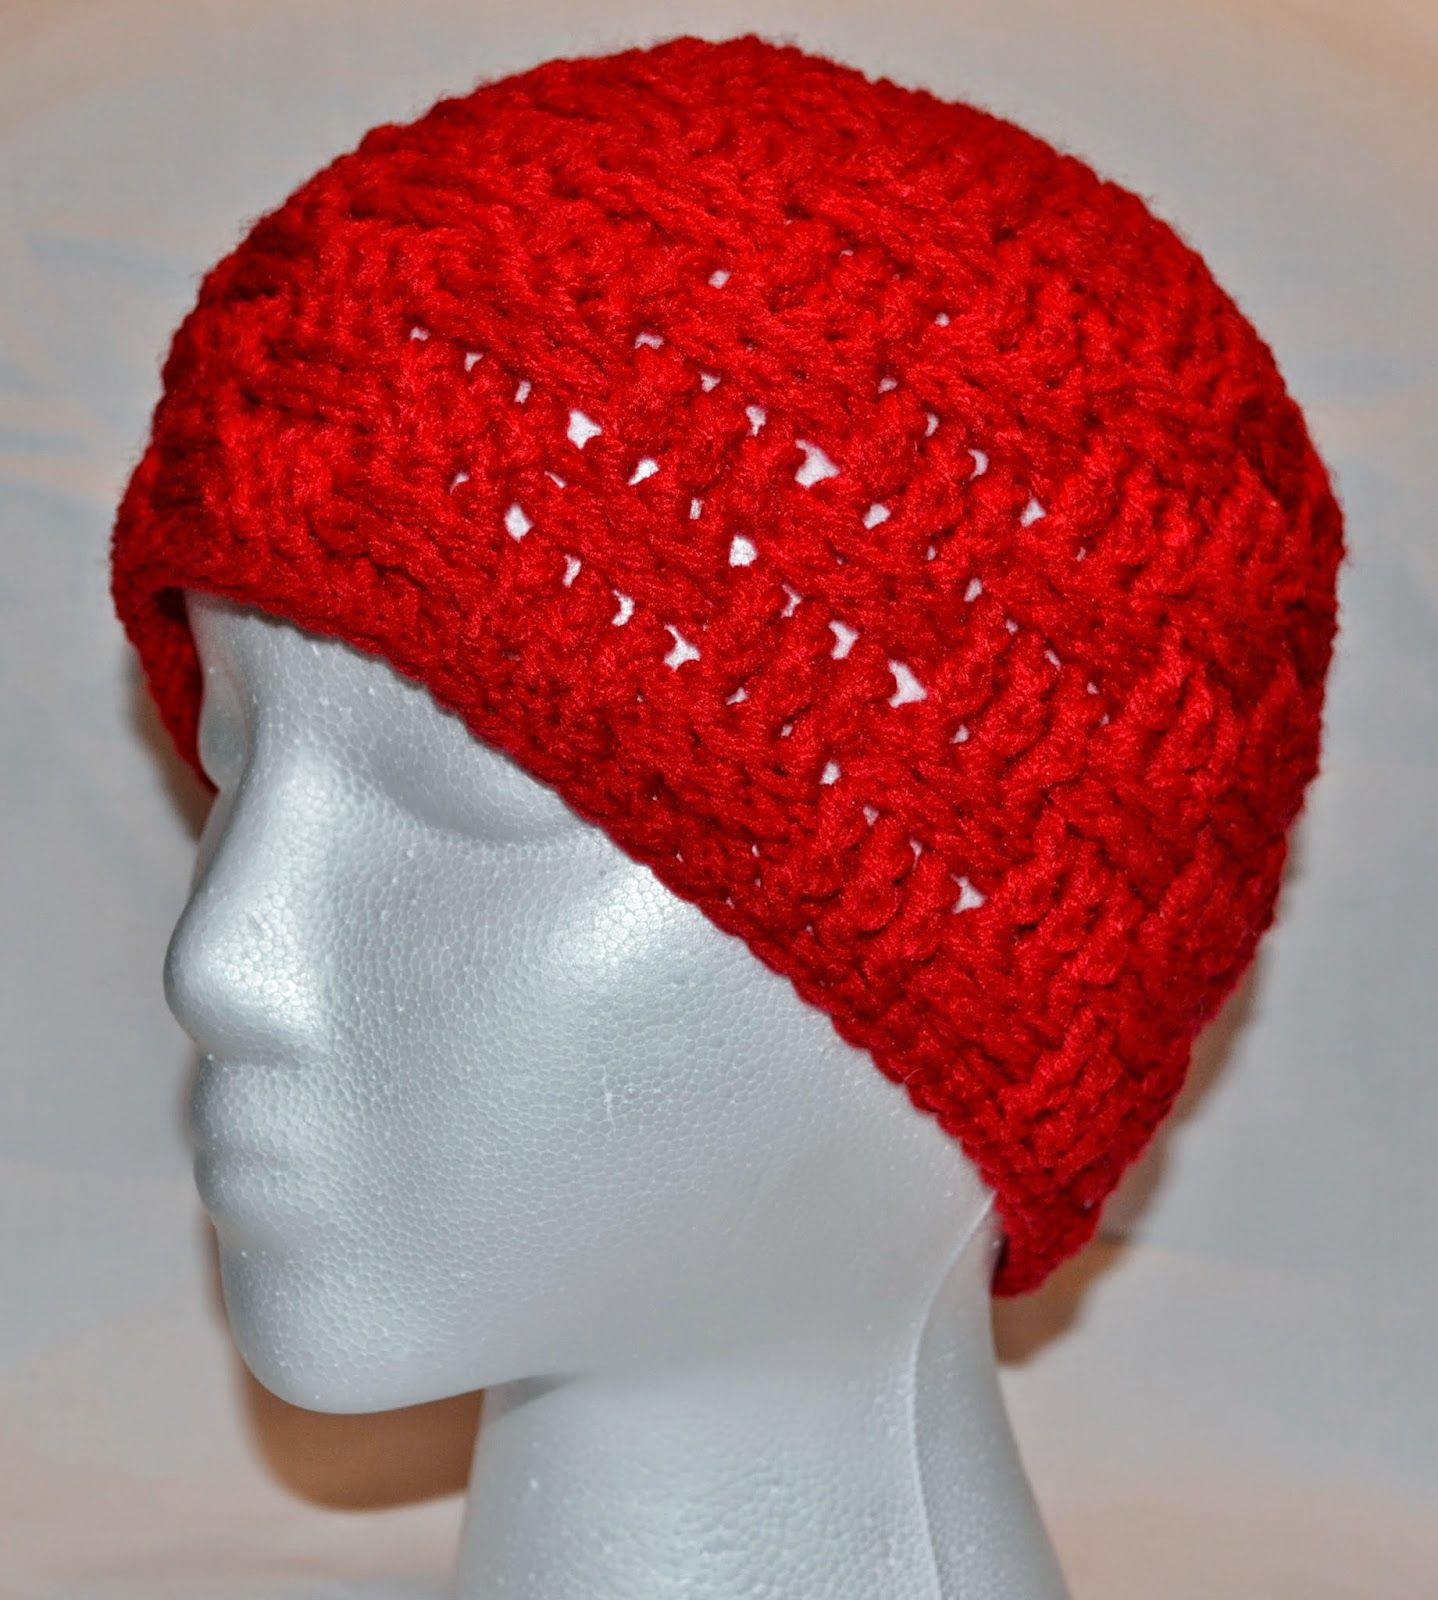 The sequin turtle 12 days of christmas hats day 7 basketweave the sequin turtle 12 days of christmas hats day 7 basketweave beanie crochet pattern child size with resizing info bankloansurffo Choice Image